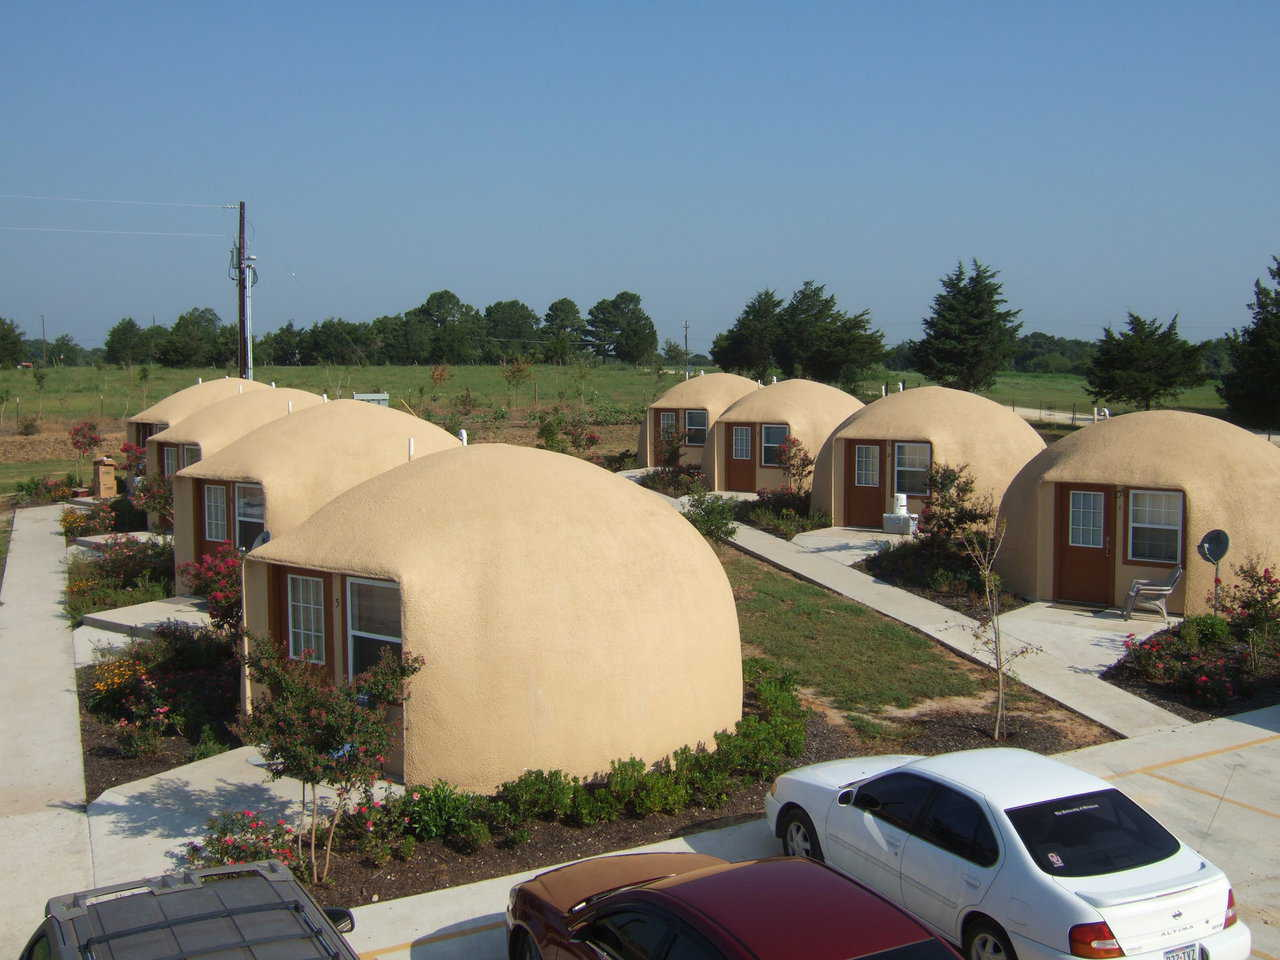 The Inn Place — With the completion of construction in Phase I, the Inn Place had eight Monolithic Dome units available for rental.